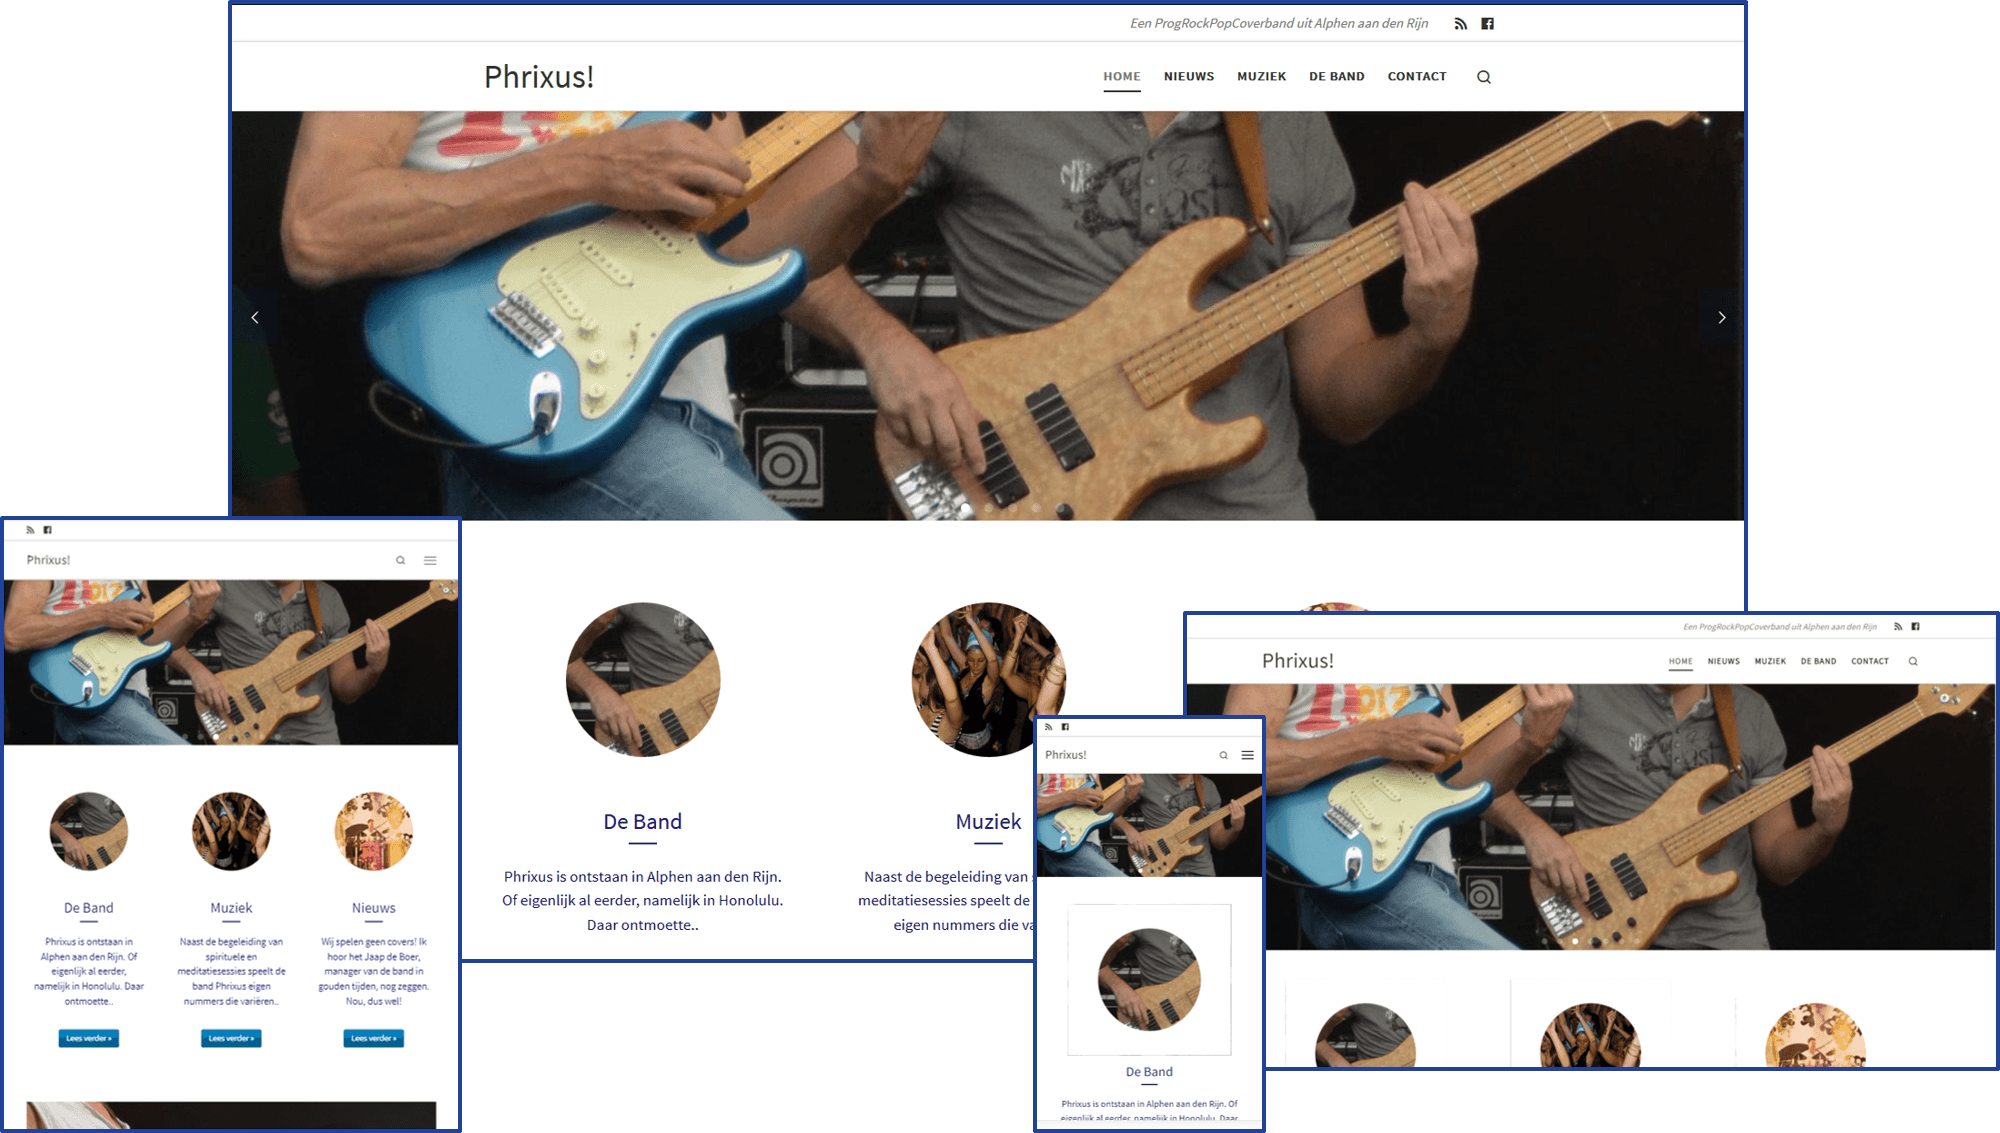 Website van de band Phrixus